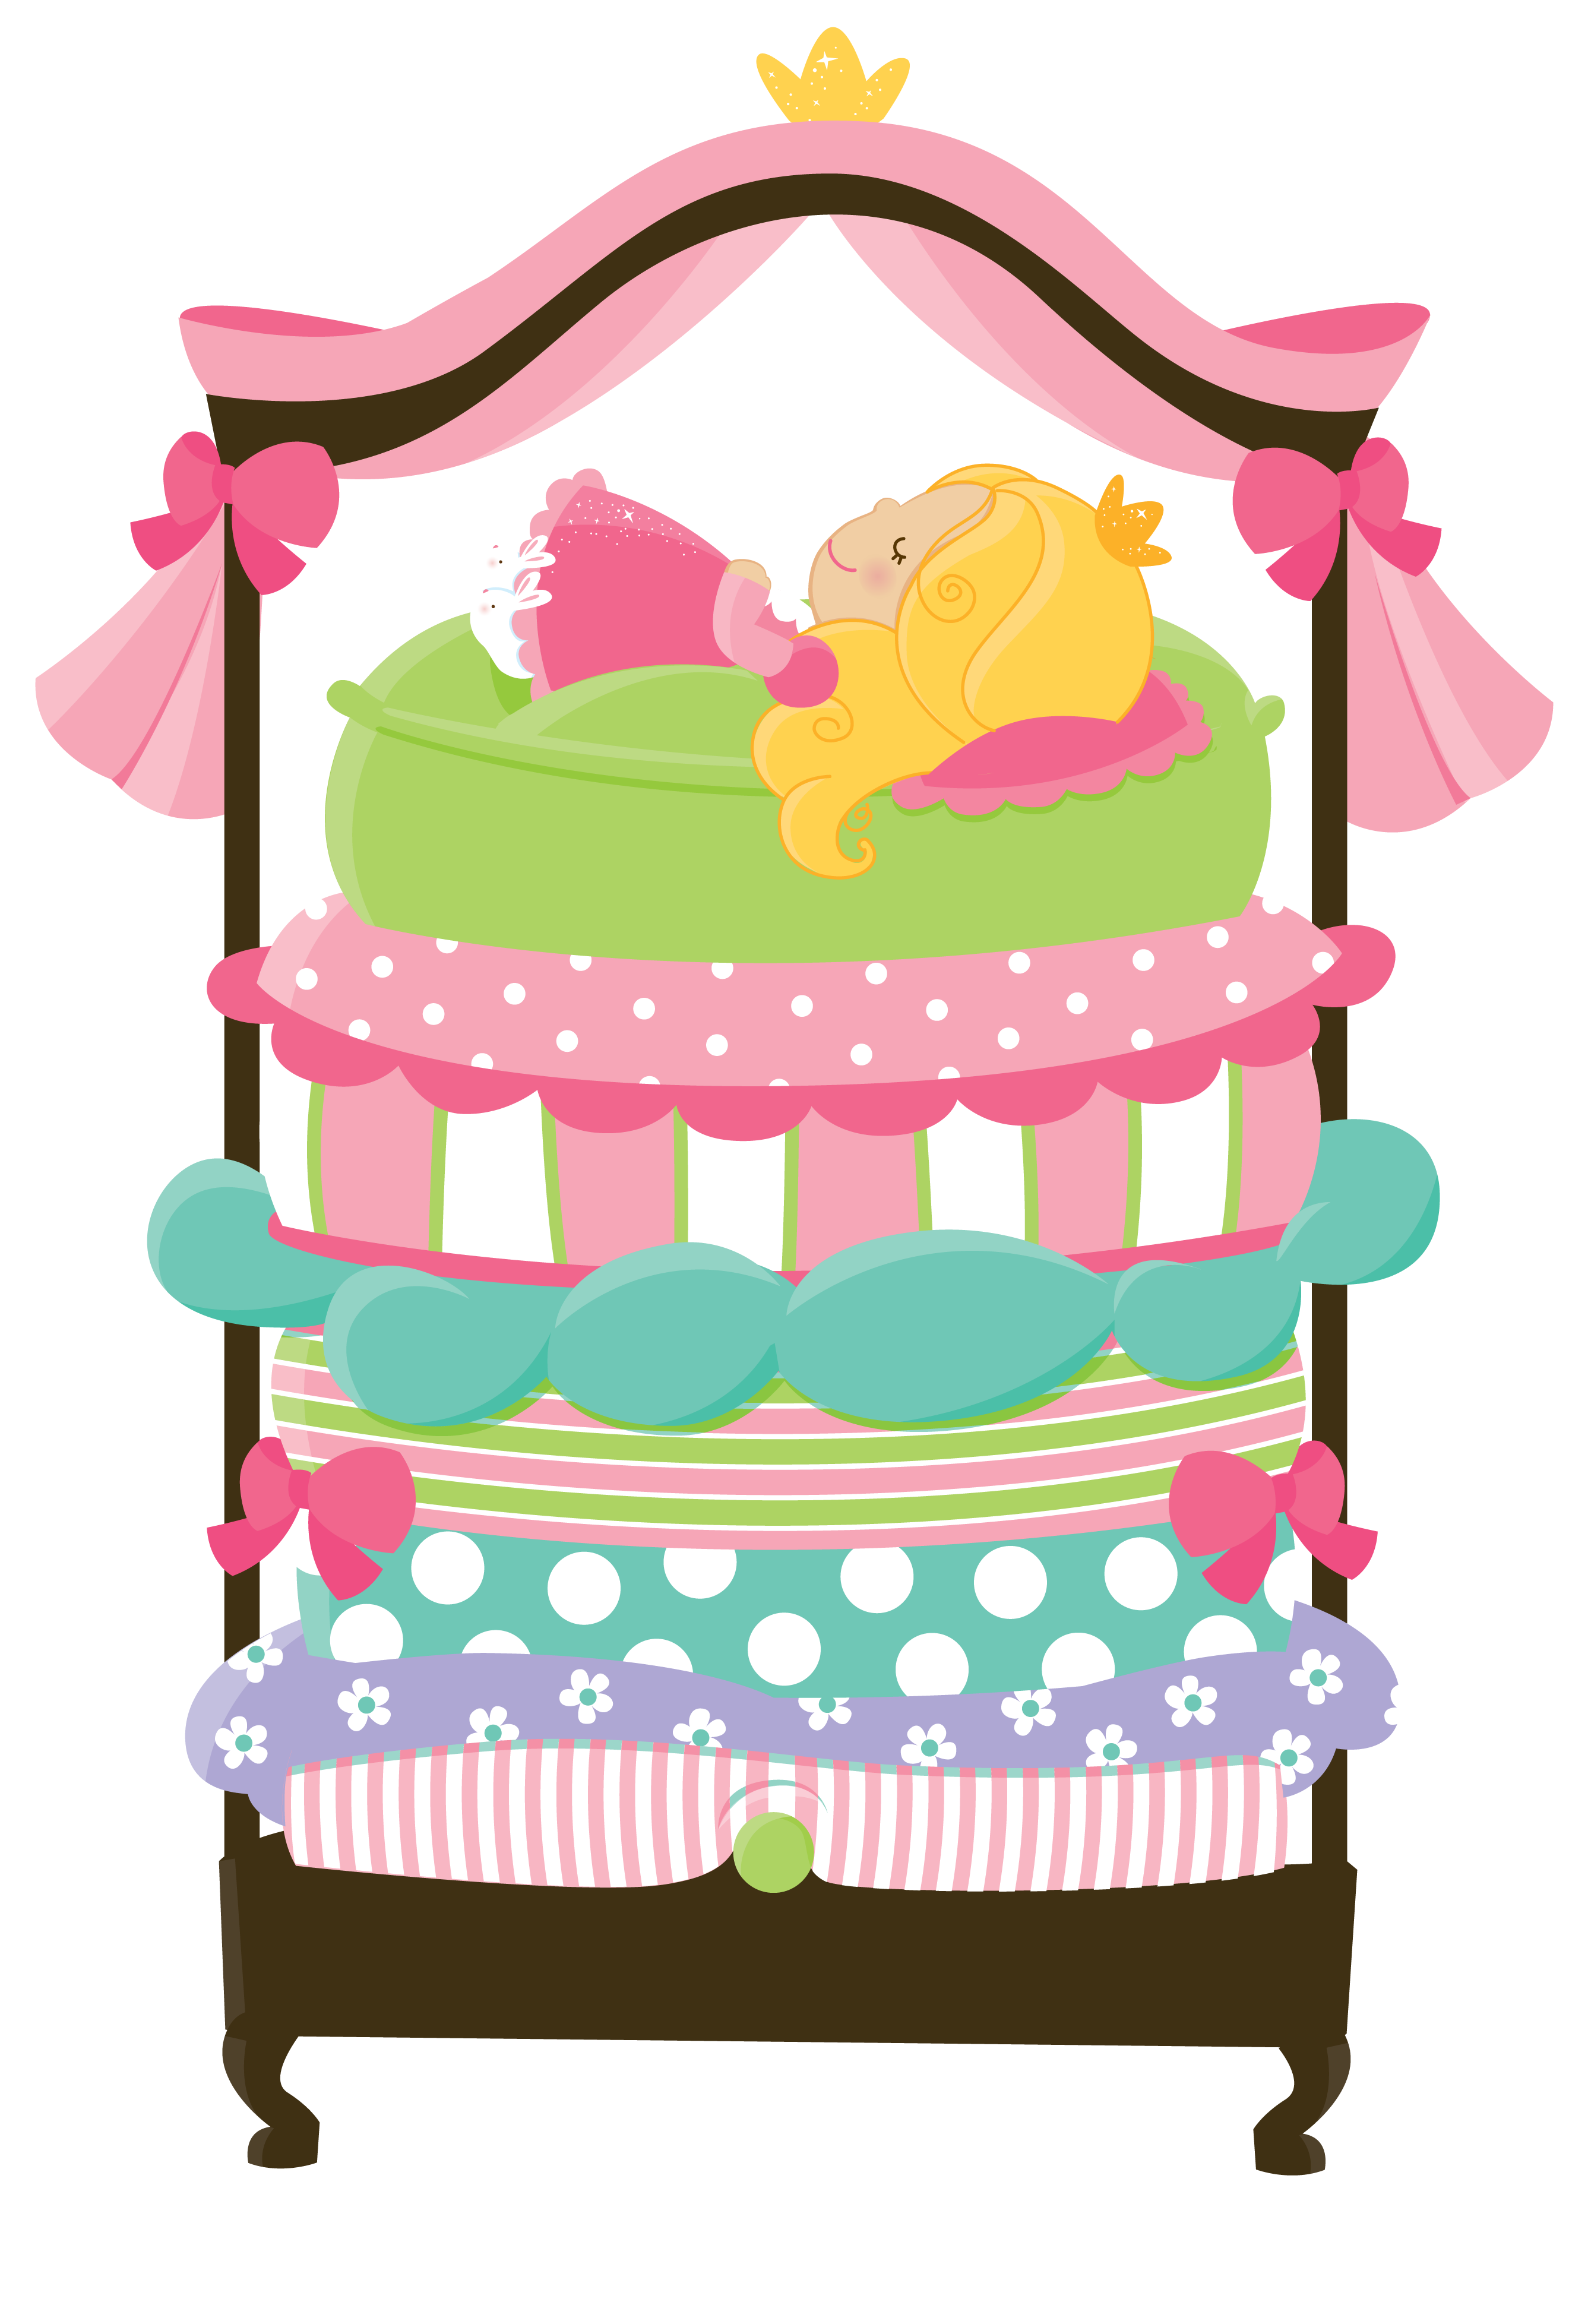 A story book clipart vector ZWD-Storybook Princess - ZWD_Princess-01.png - Minus | clipart ... vector